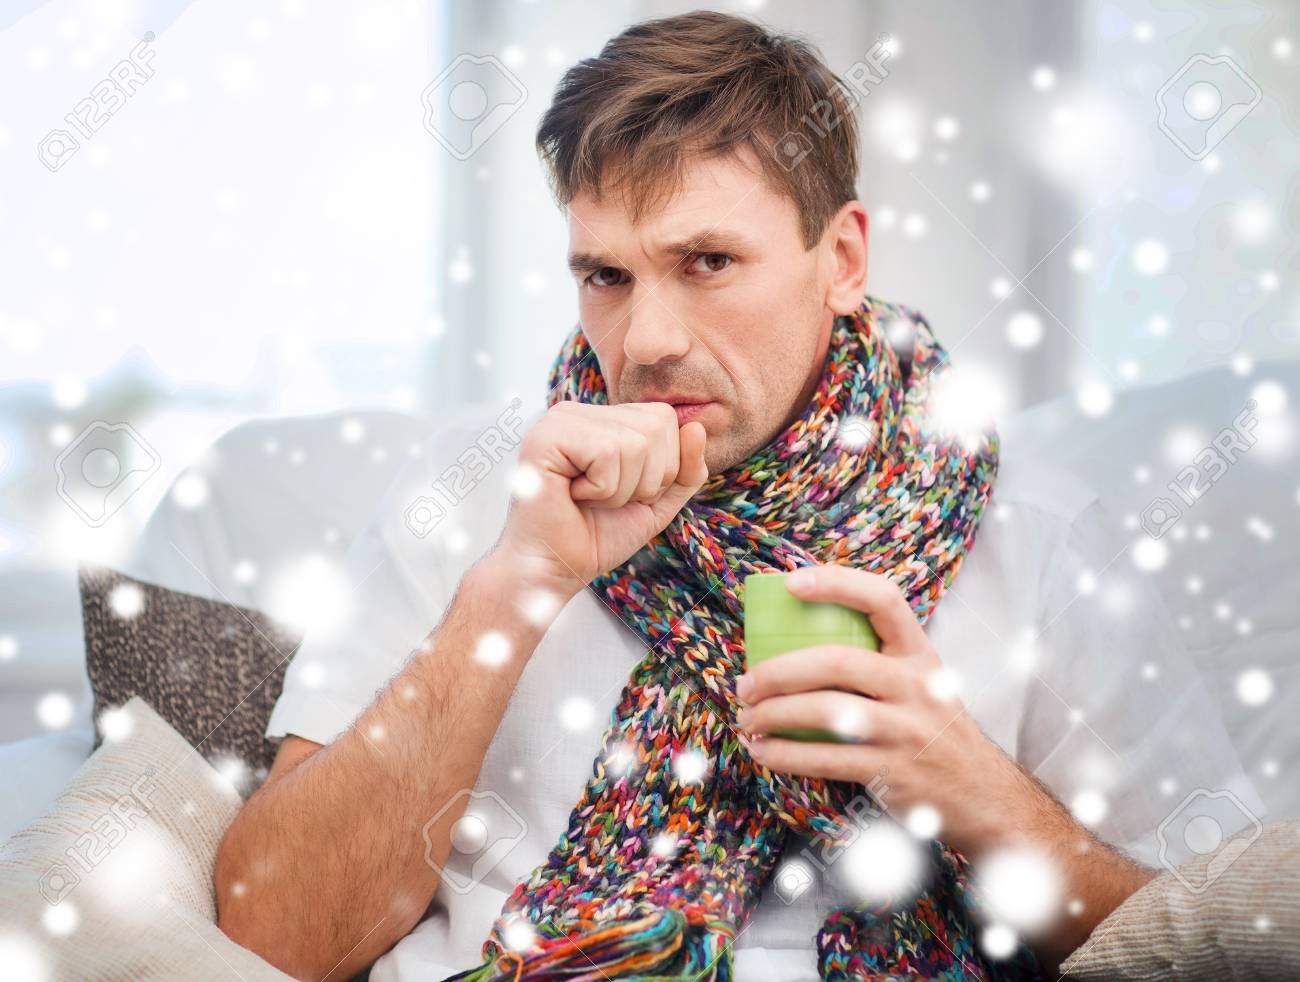 healthcare and medicine concept - ill man with flu at home Stock Photo - 23671463